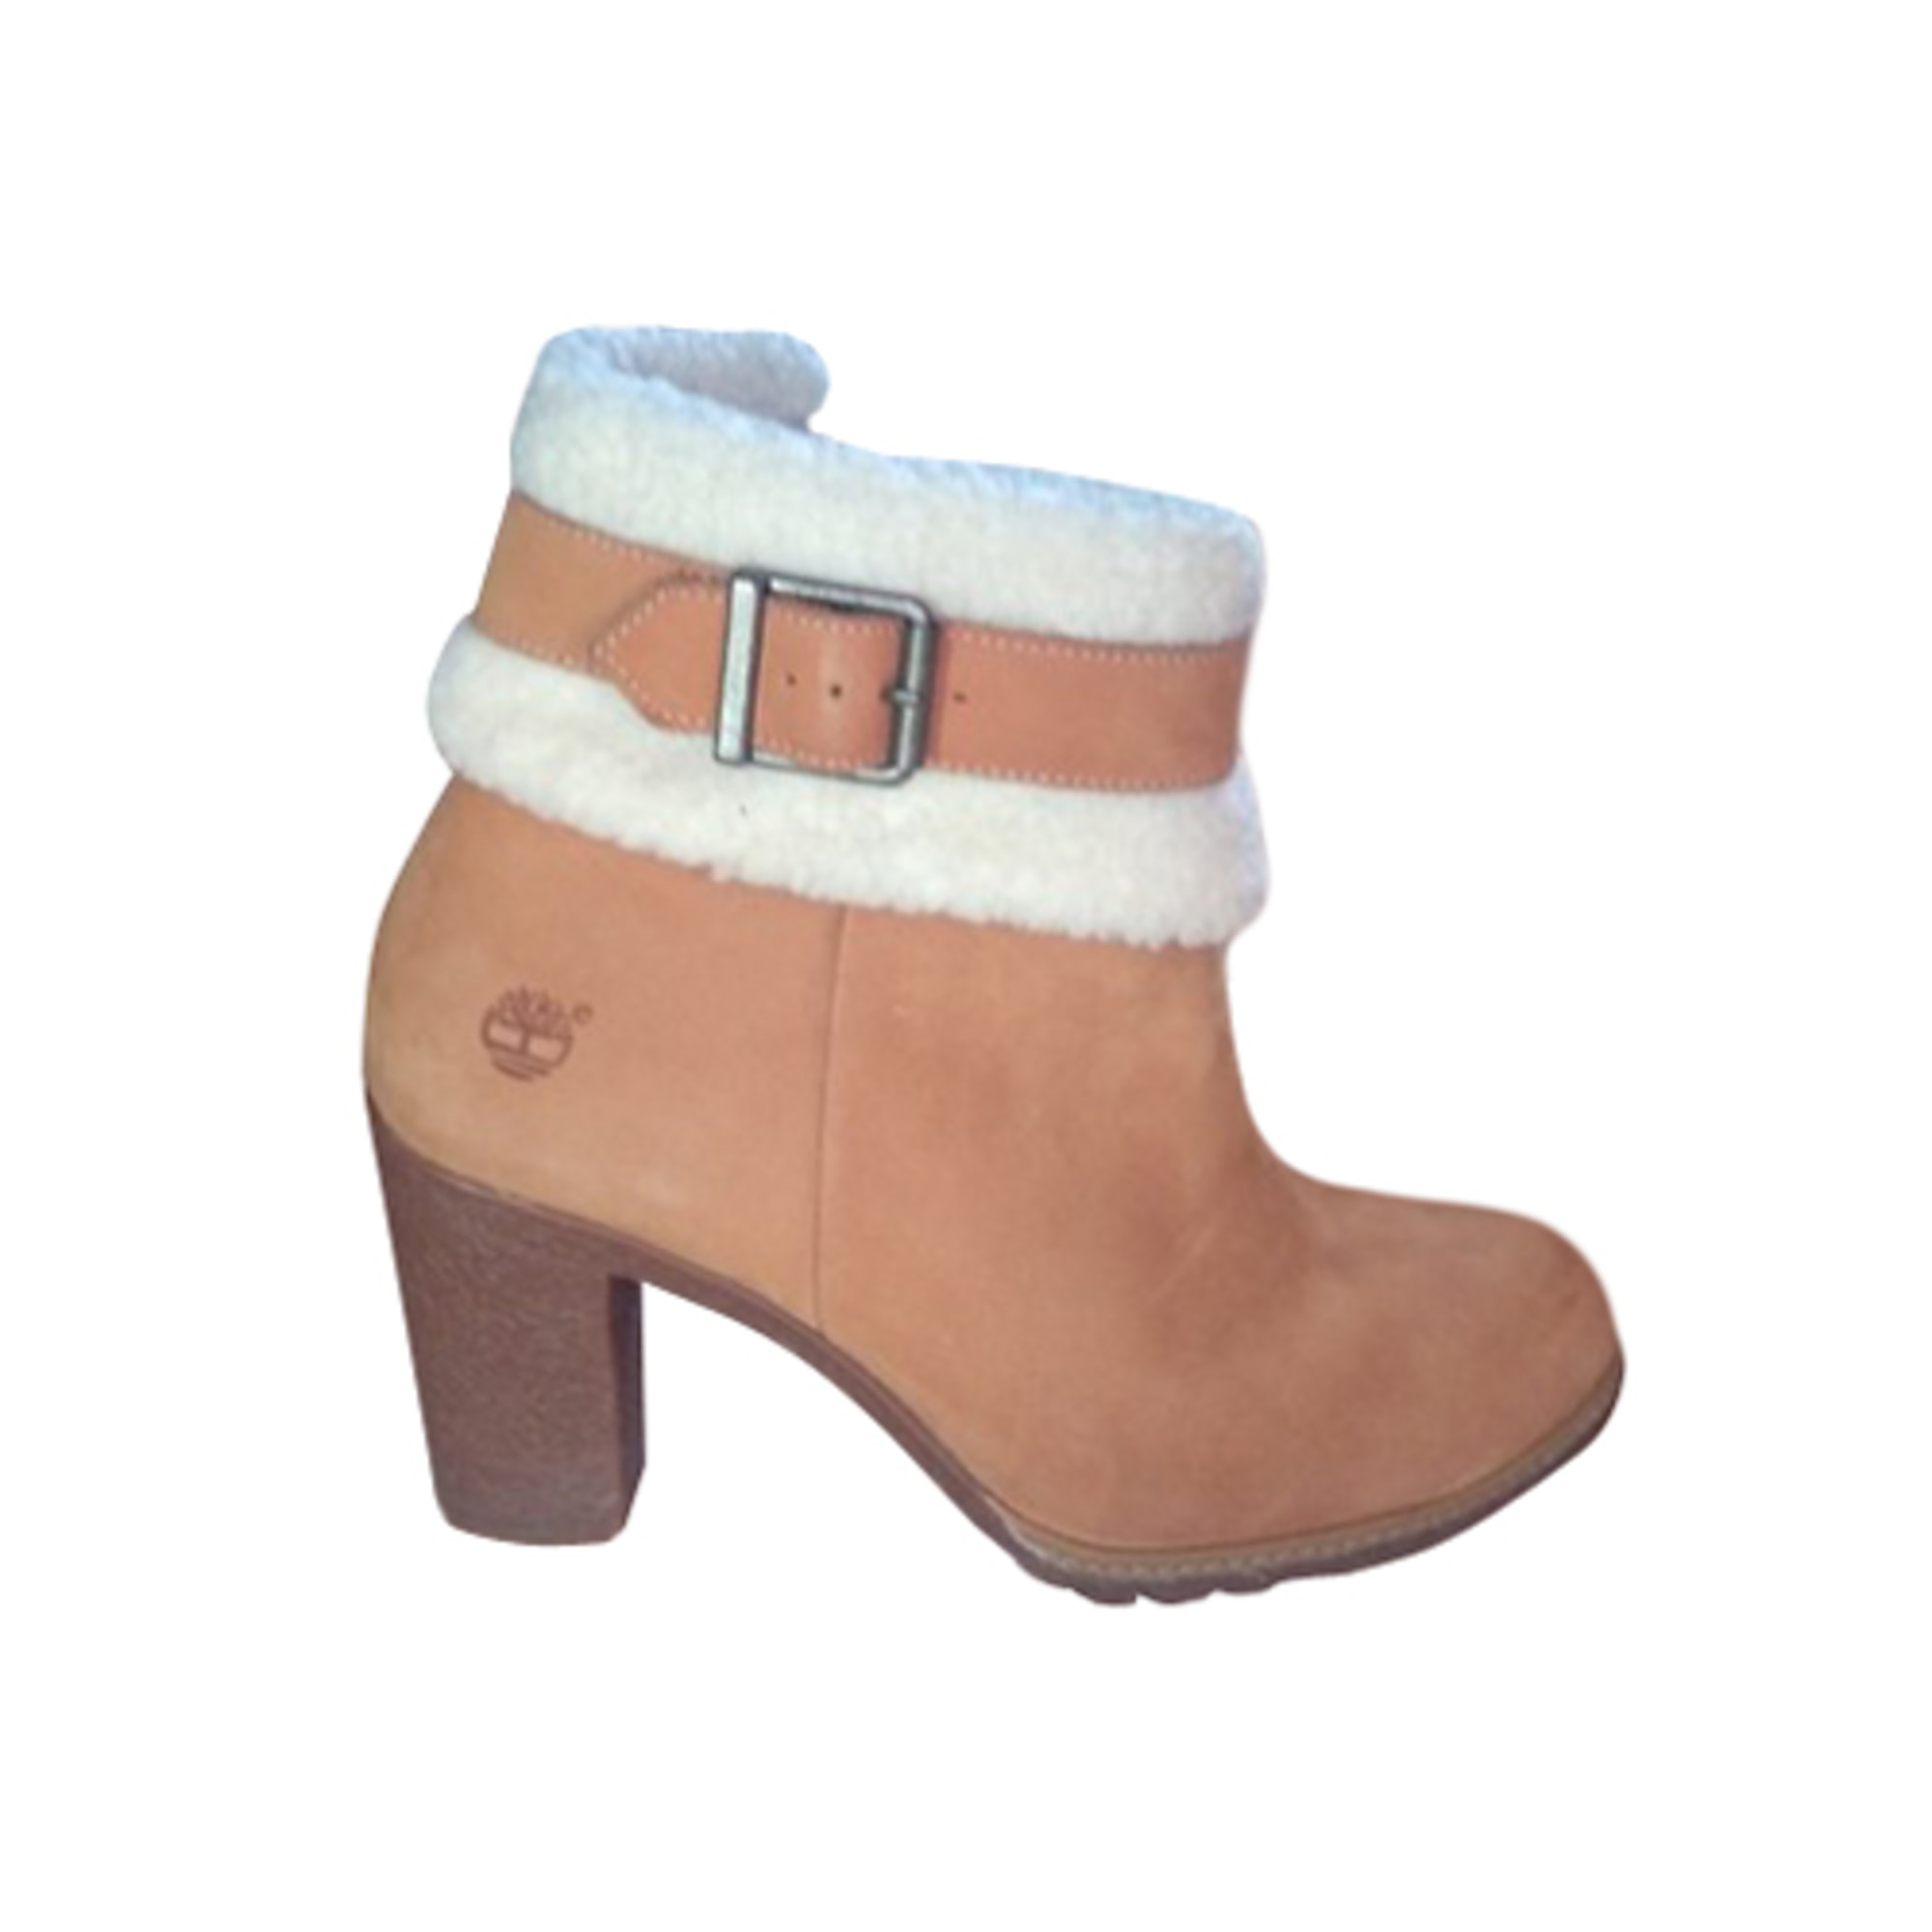 faccd19c858 Bottines   low boots à talons TIMBERLAND 40 beige - 8672426